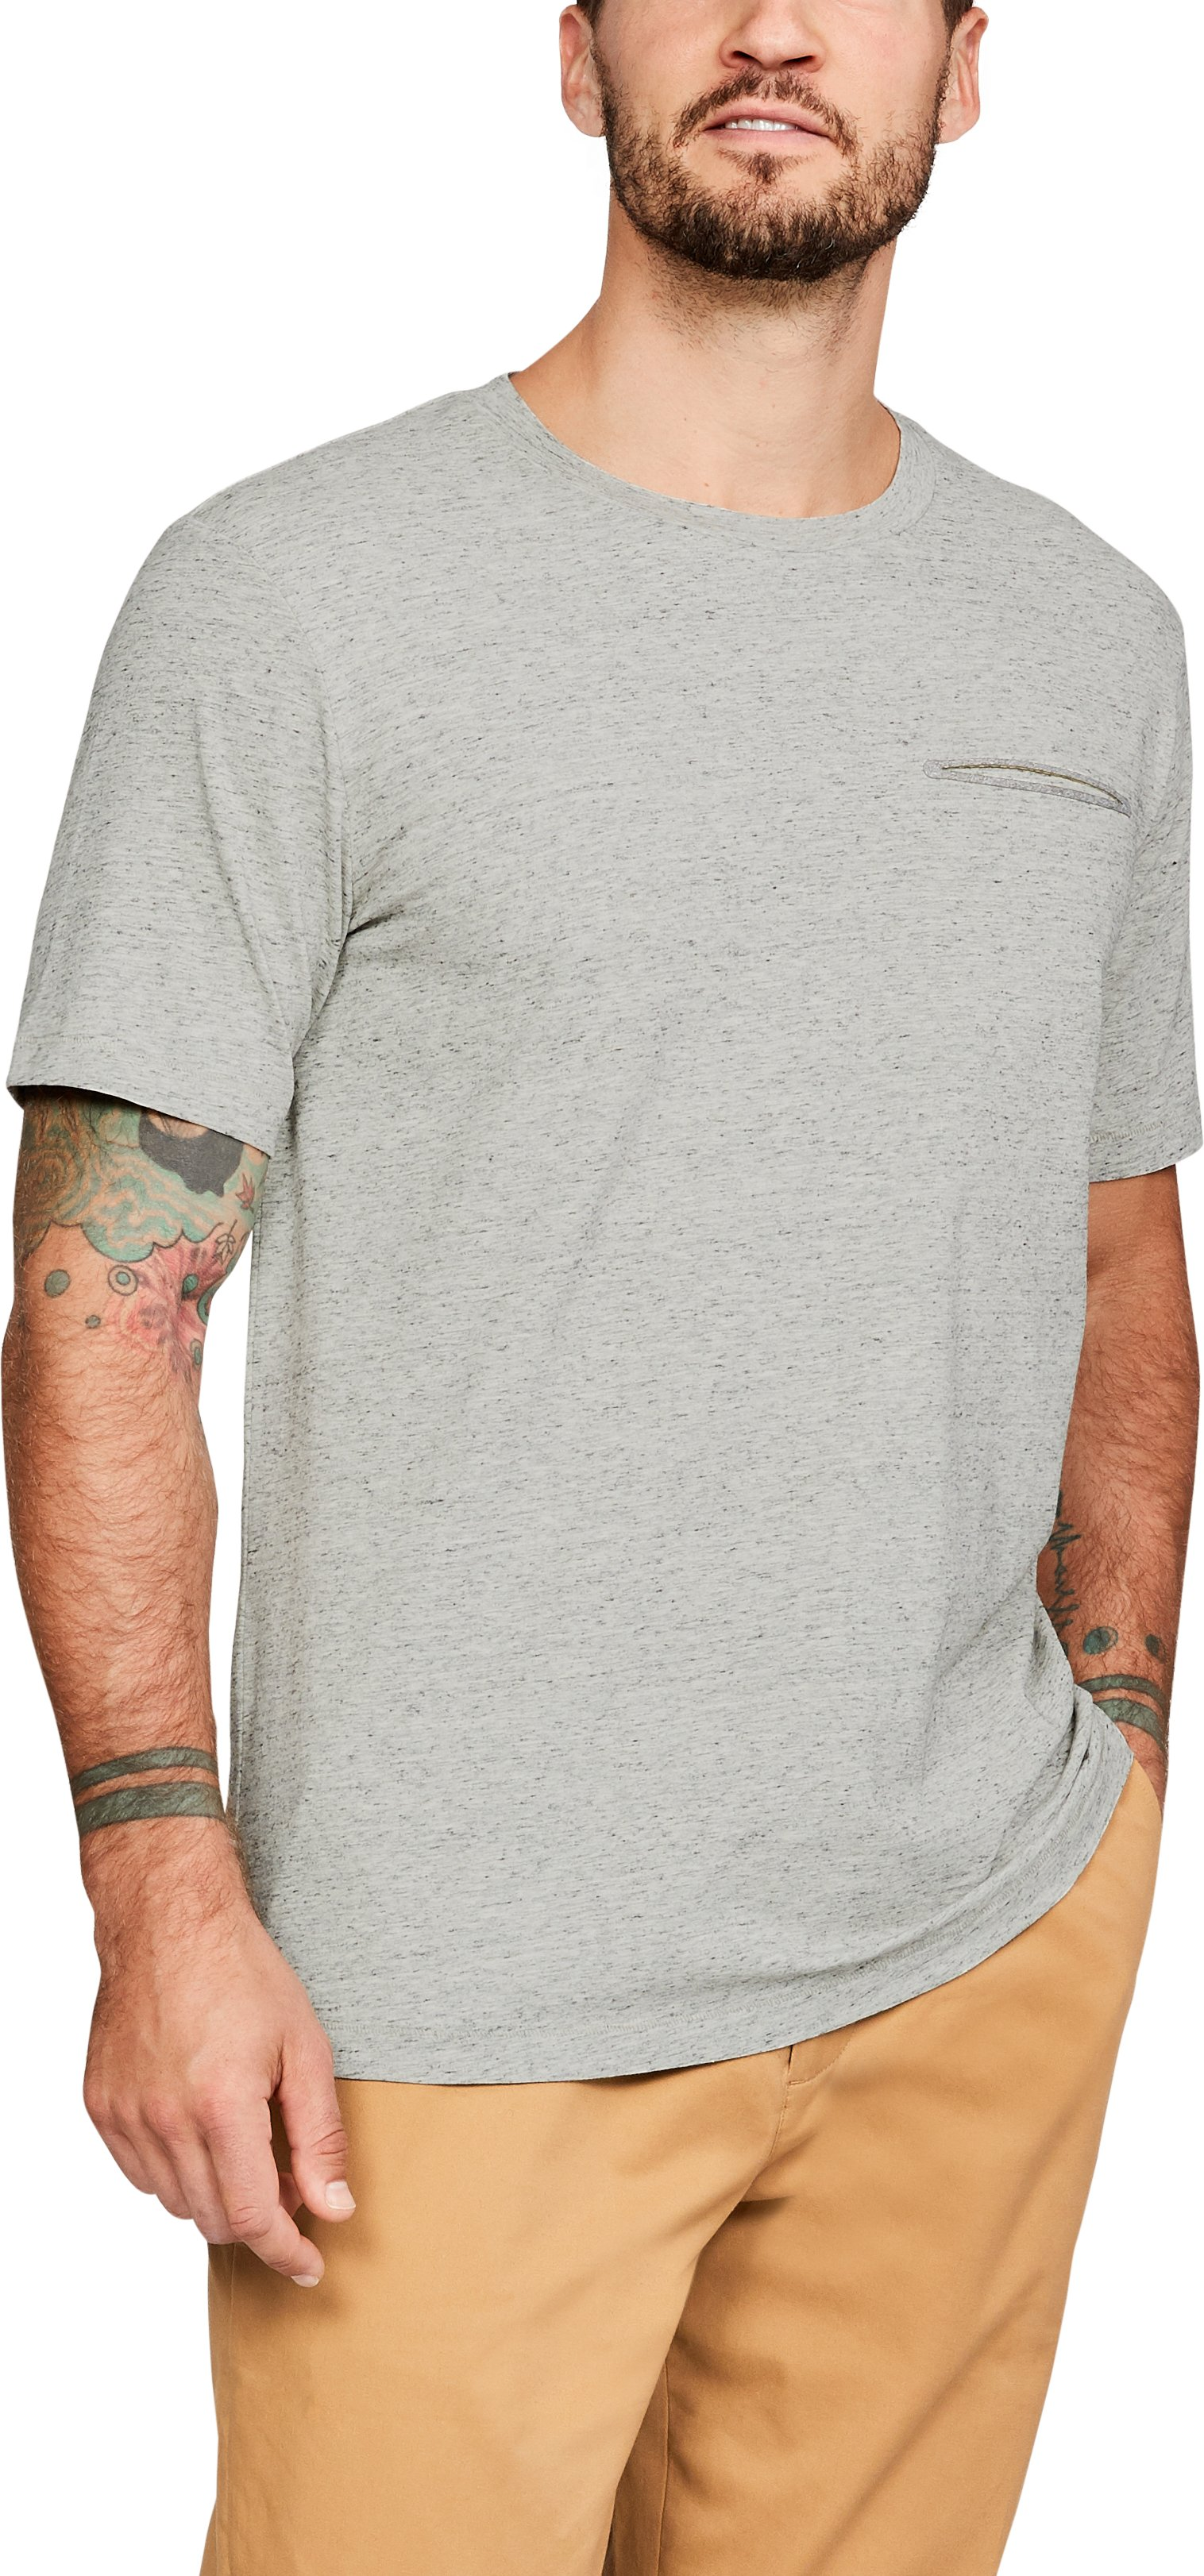 Men's UA Sportswear Prime Crew T-Shirt, UAS Speckled Heather Grey,